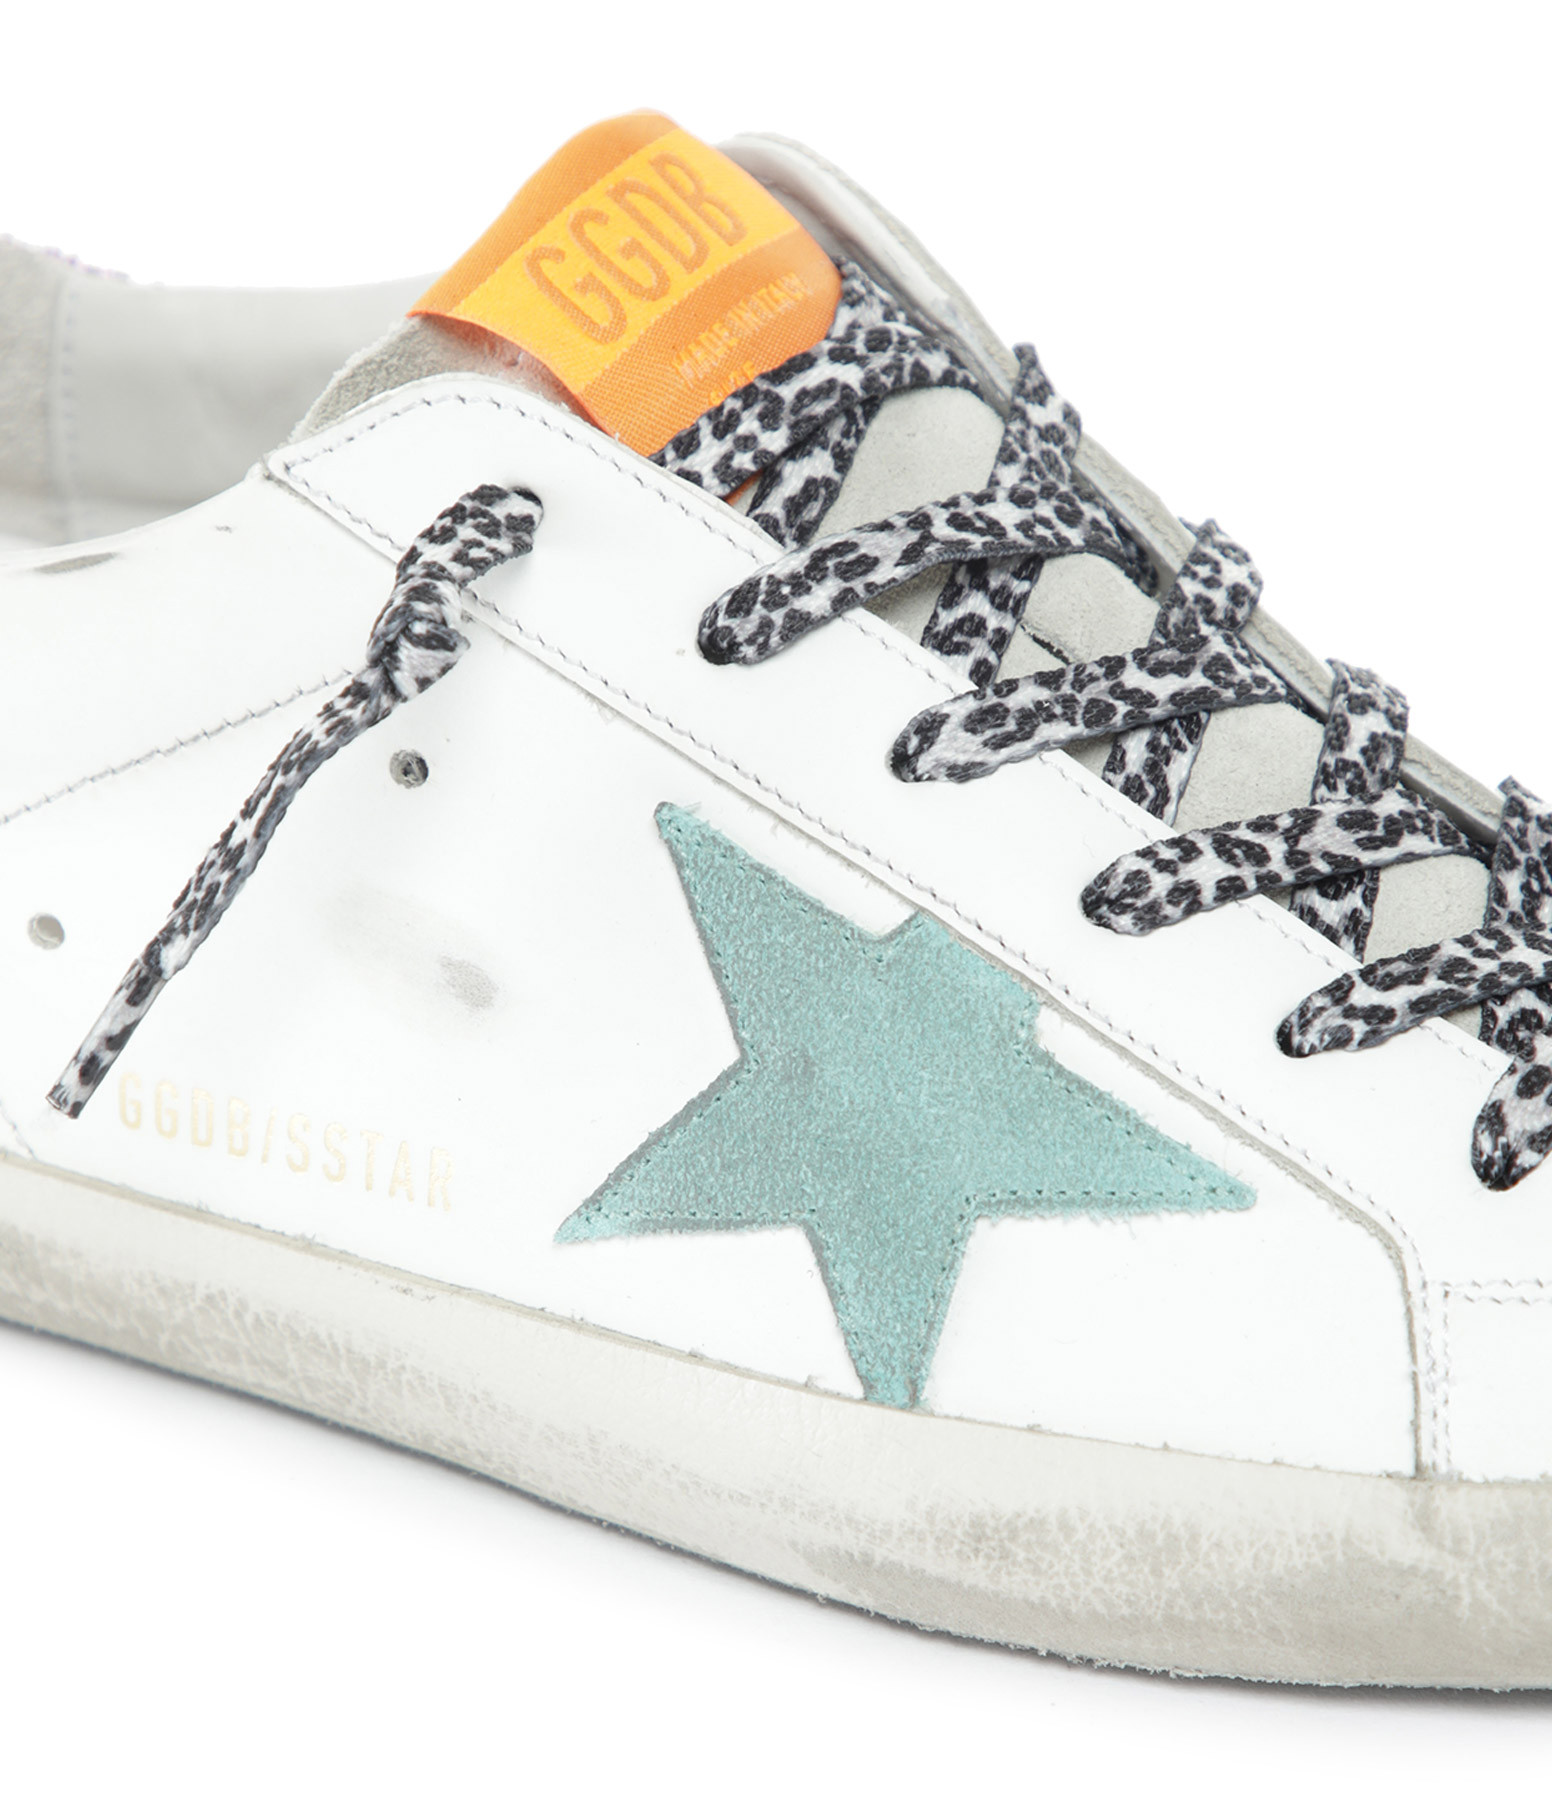 GOLDEN GOOSE - Baskets Superstar Cuir Suédé Blanc Bleu